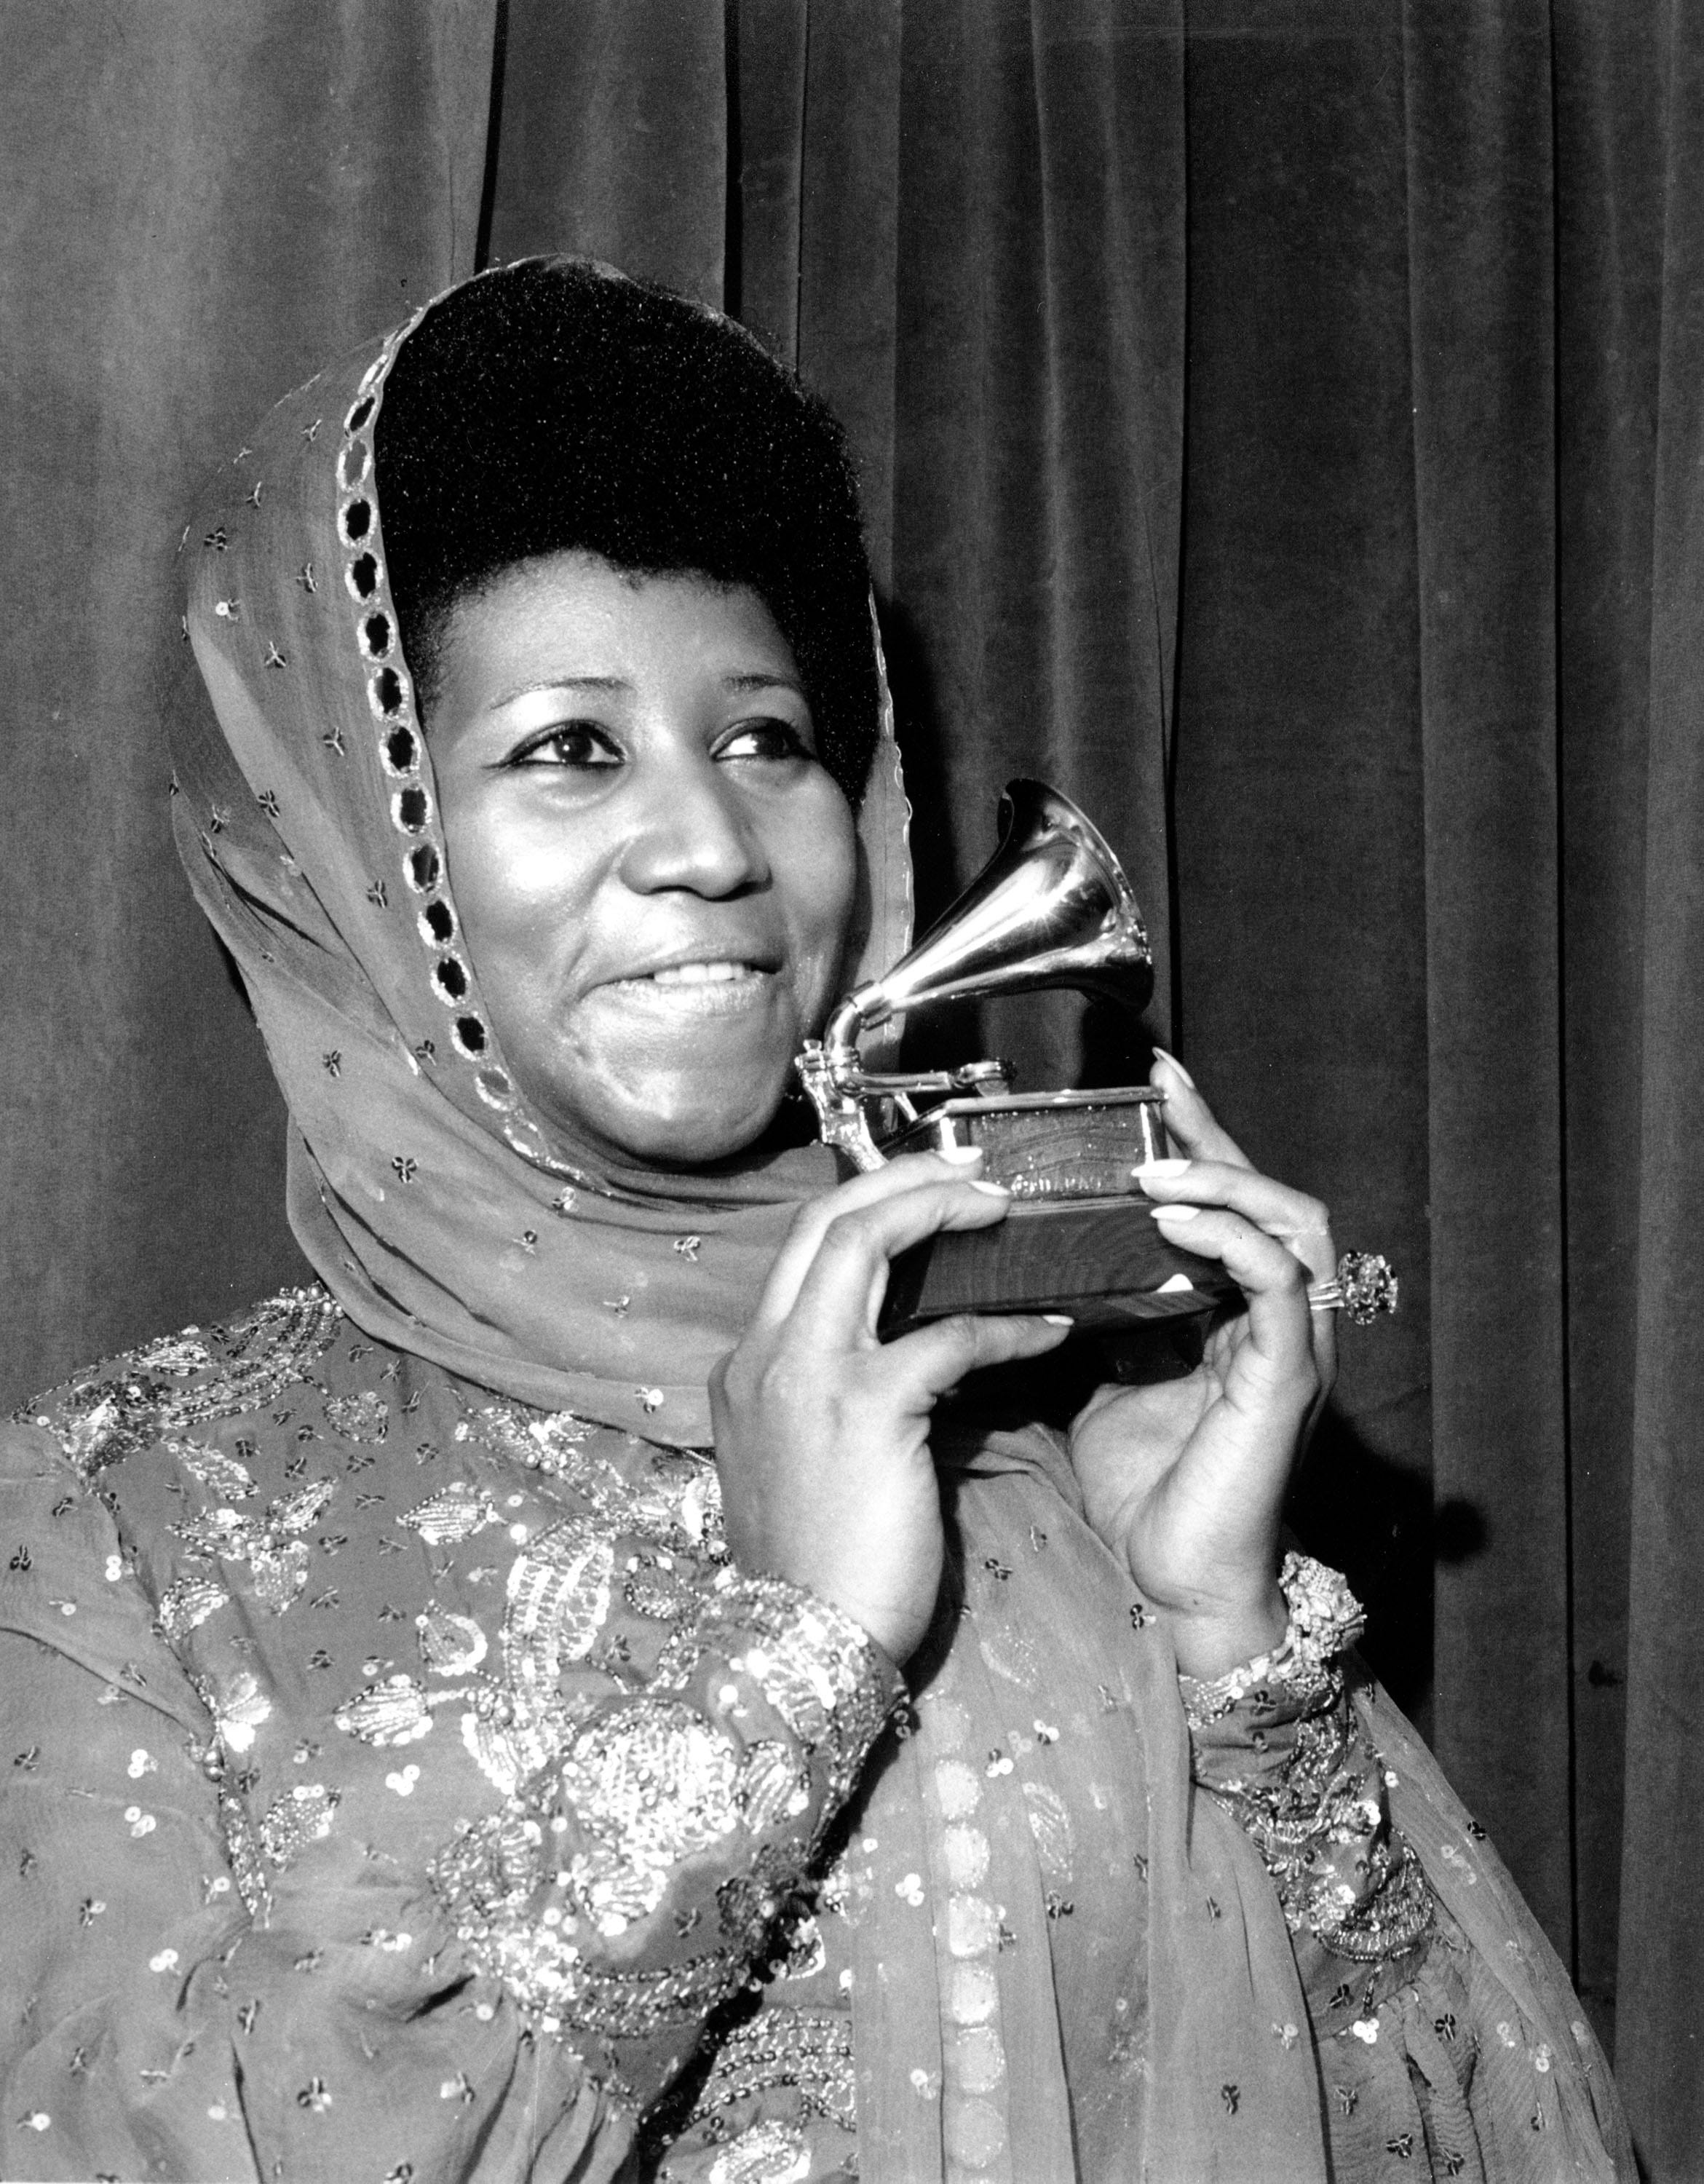 """Aretha Franklin poses with her Grammy Award at the 17th Annual Grammy Award presentation in New York on March 3, 1975. The award is for her performance in """"Ain't Nothing Like the Real Thing."""" Franklin has won every Grammy Award for """"Best Rhythm and Blues Performance, Female"""" since this category was created in 1968."""